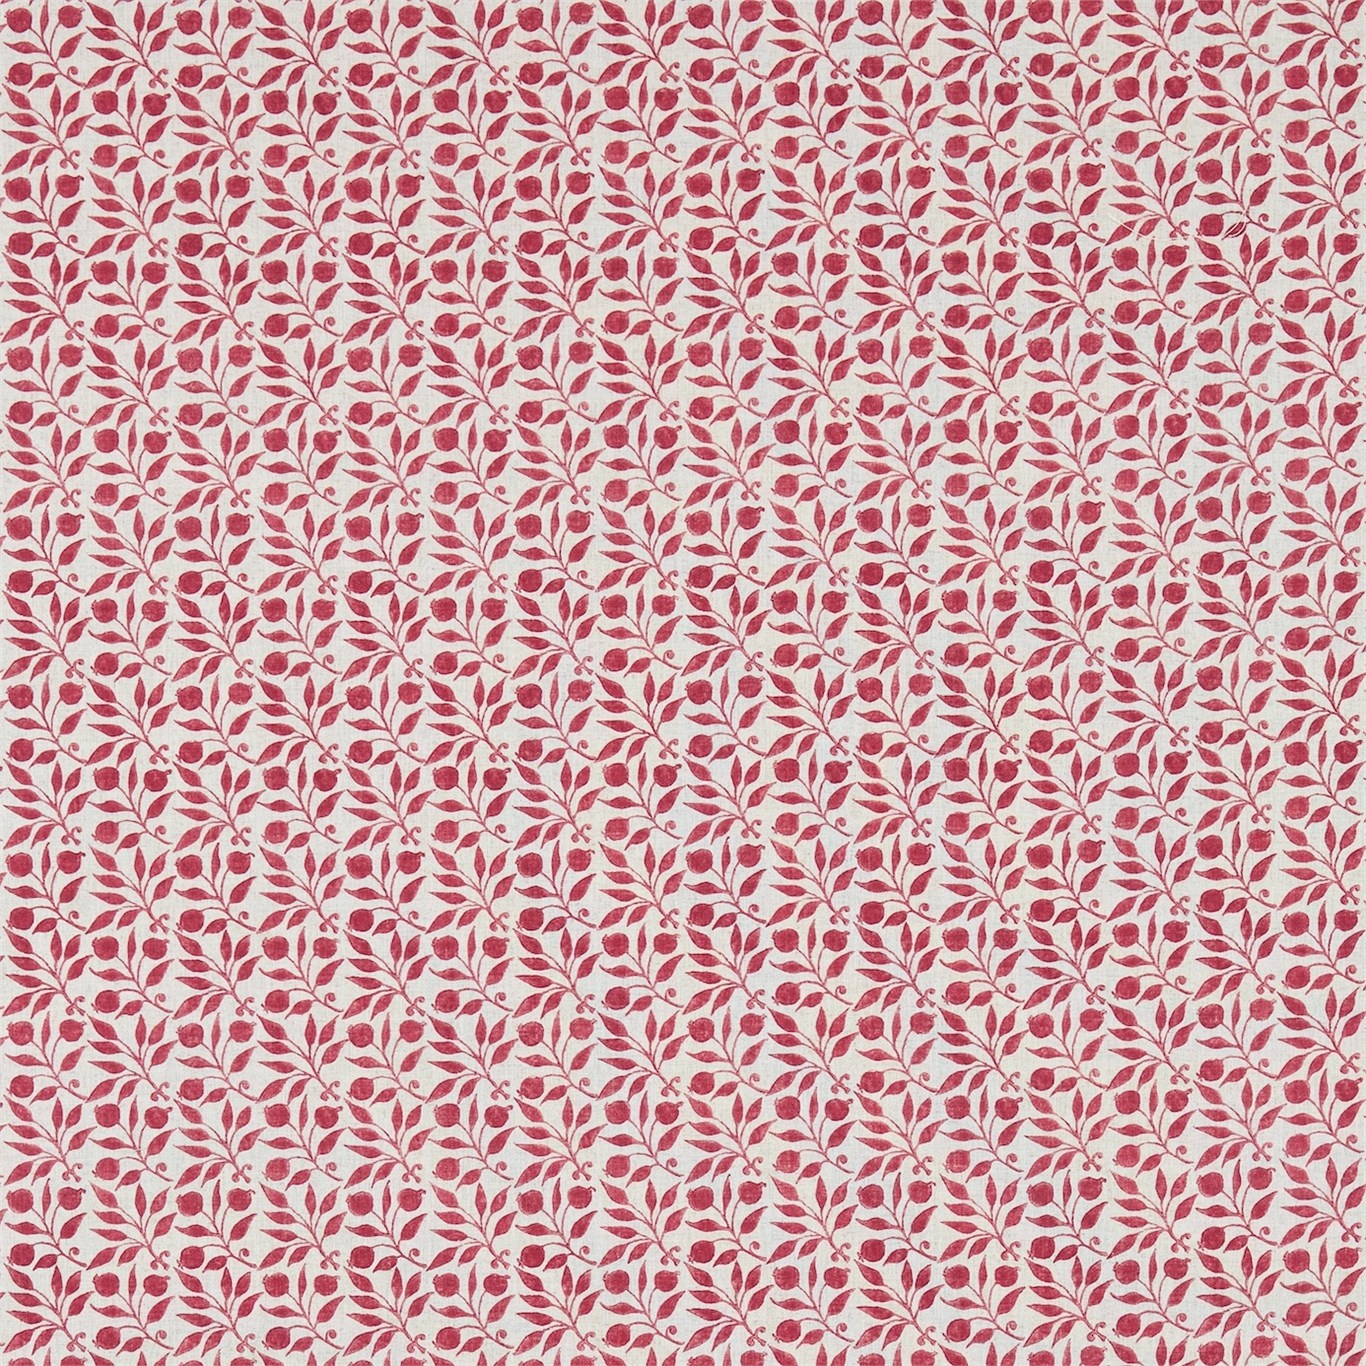 Image of Morris & Co Rosehip Rose Curtain Fabric 224485